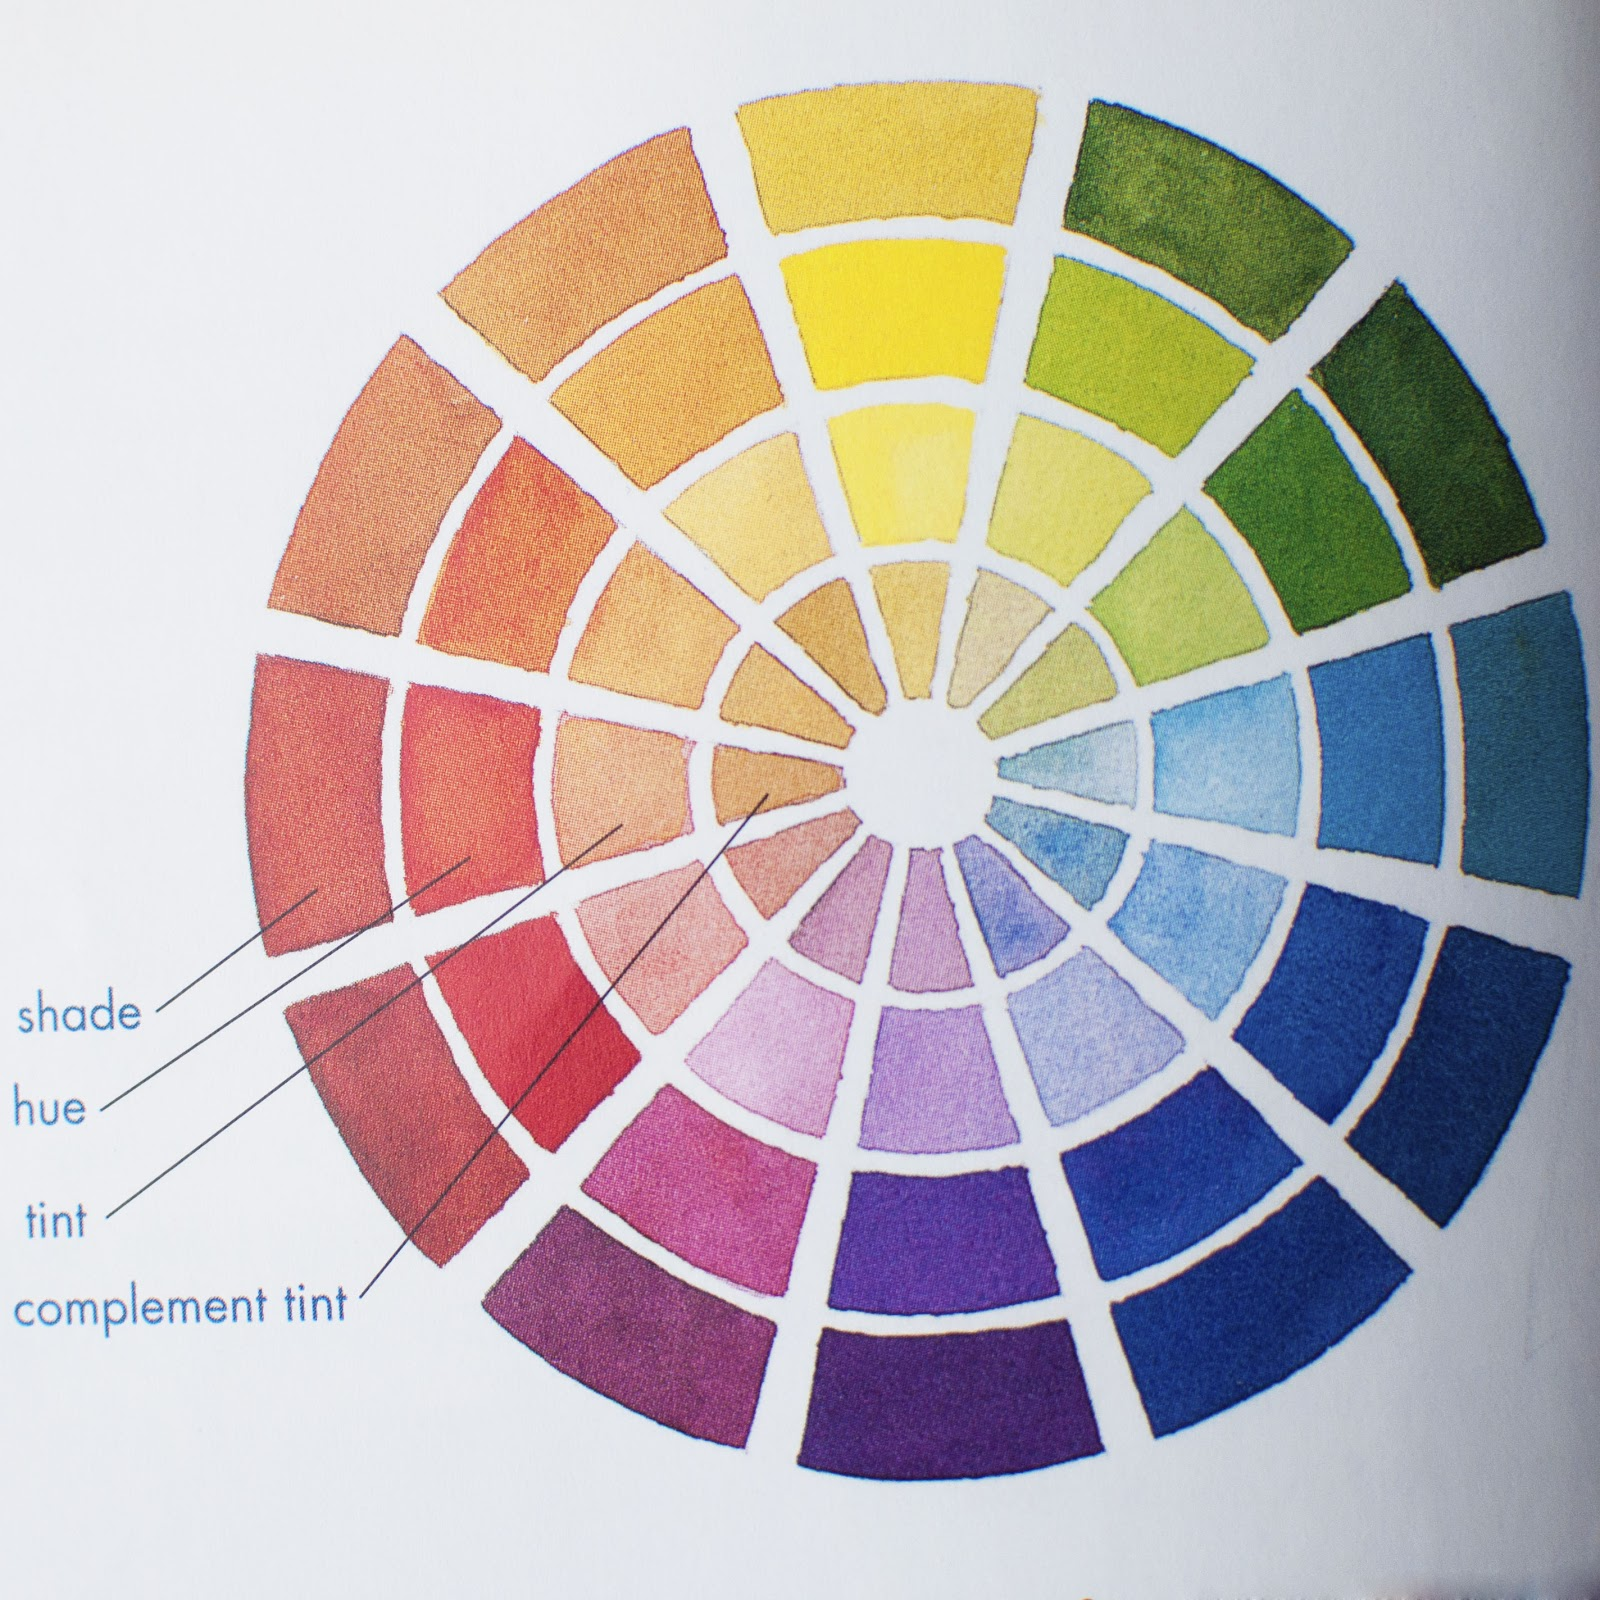 The Women Survival Web Book: Using a color wheel to paint/decorate ...